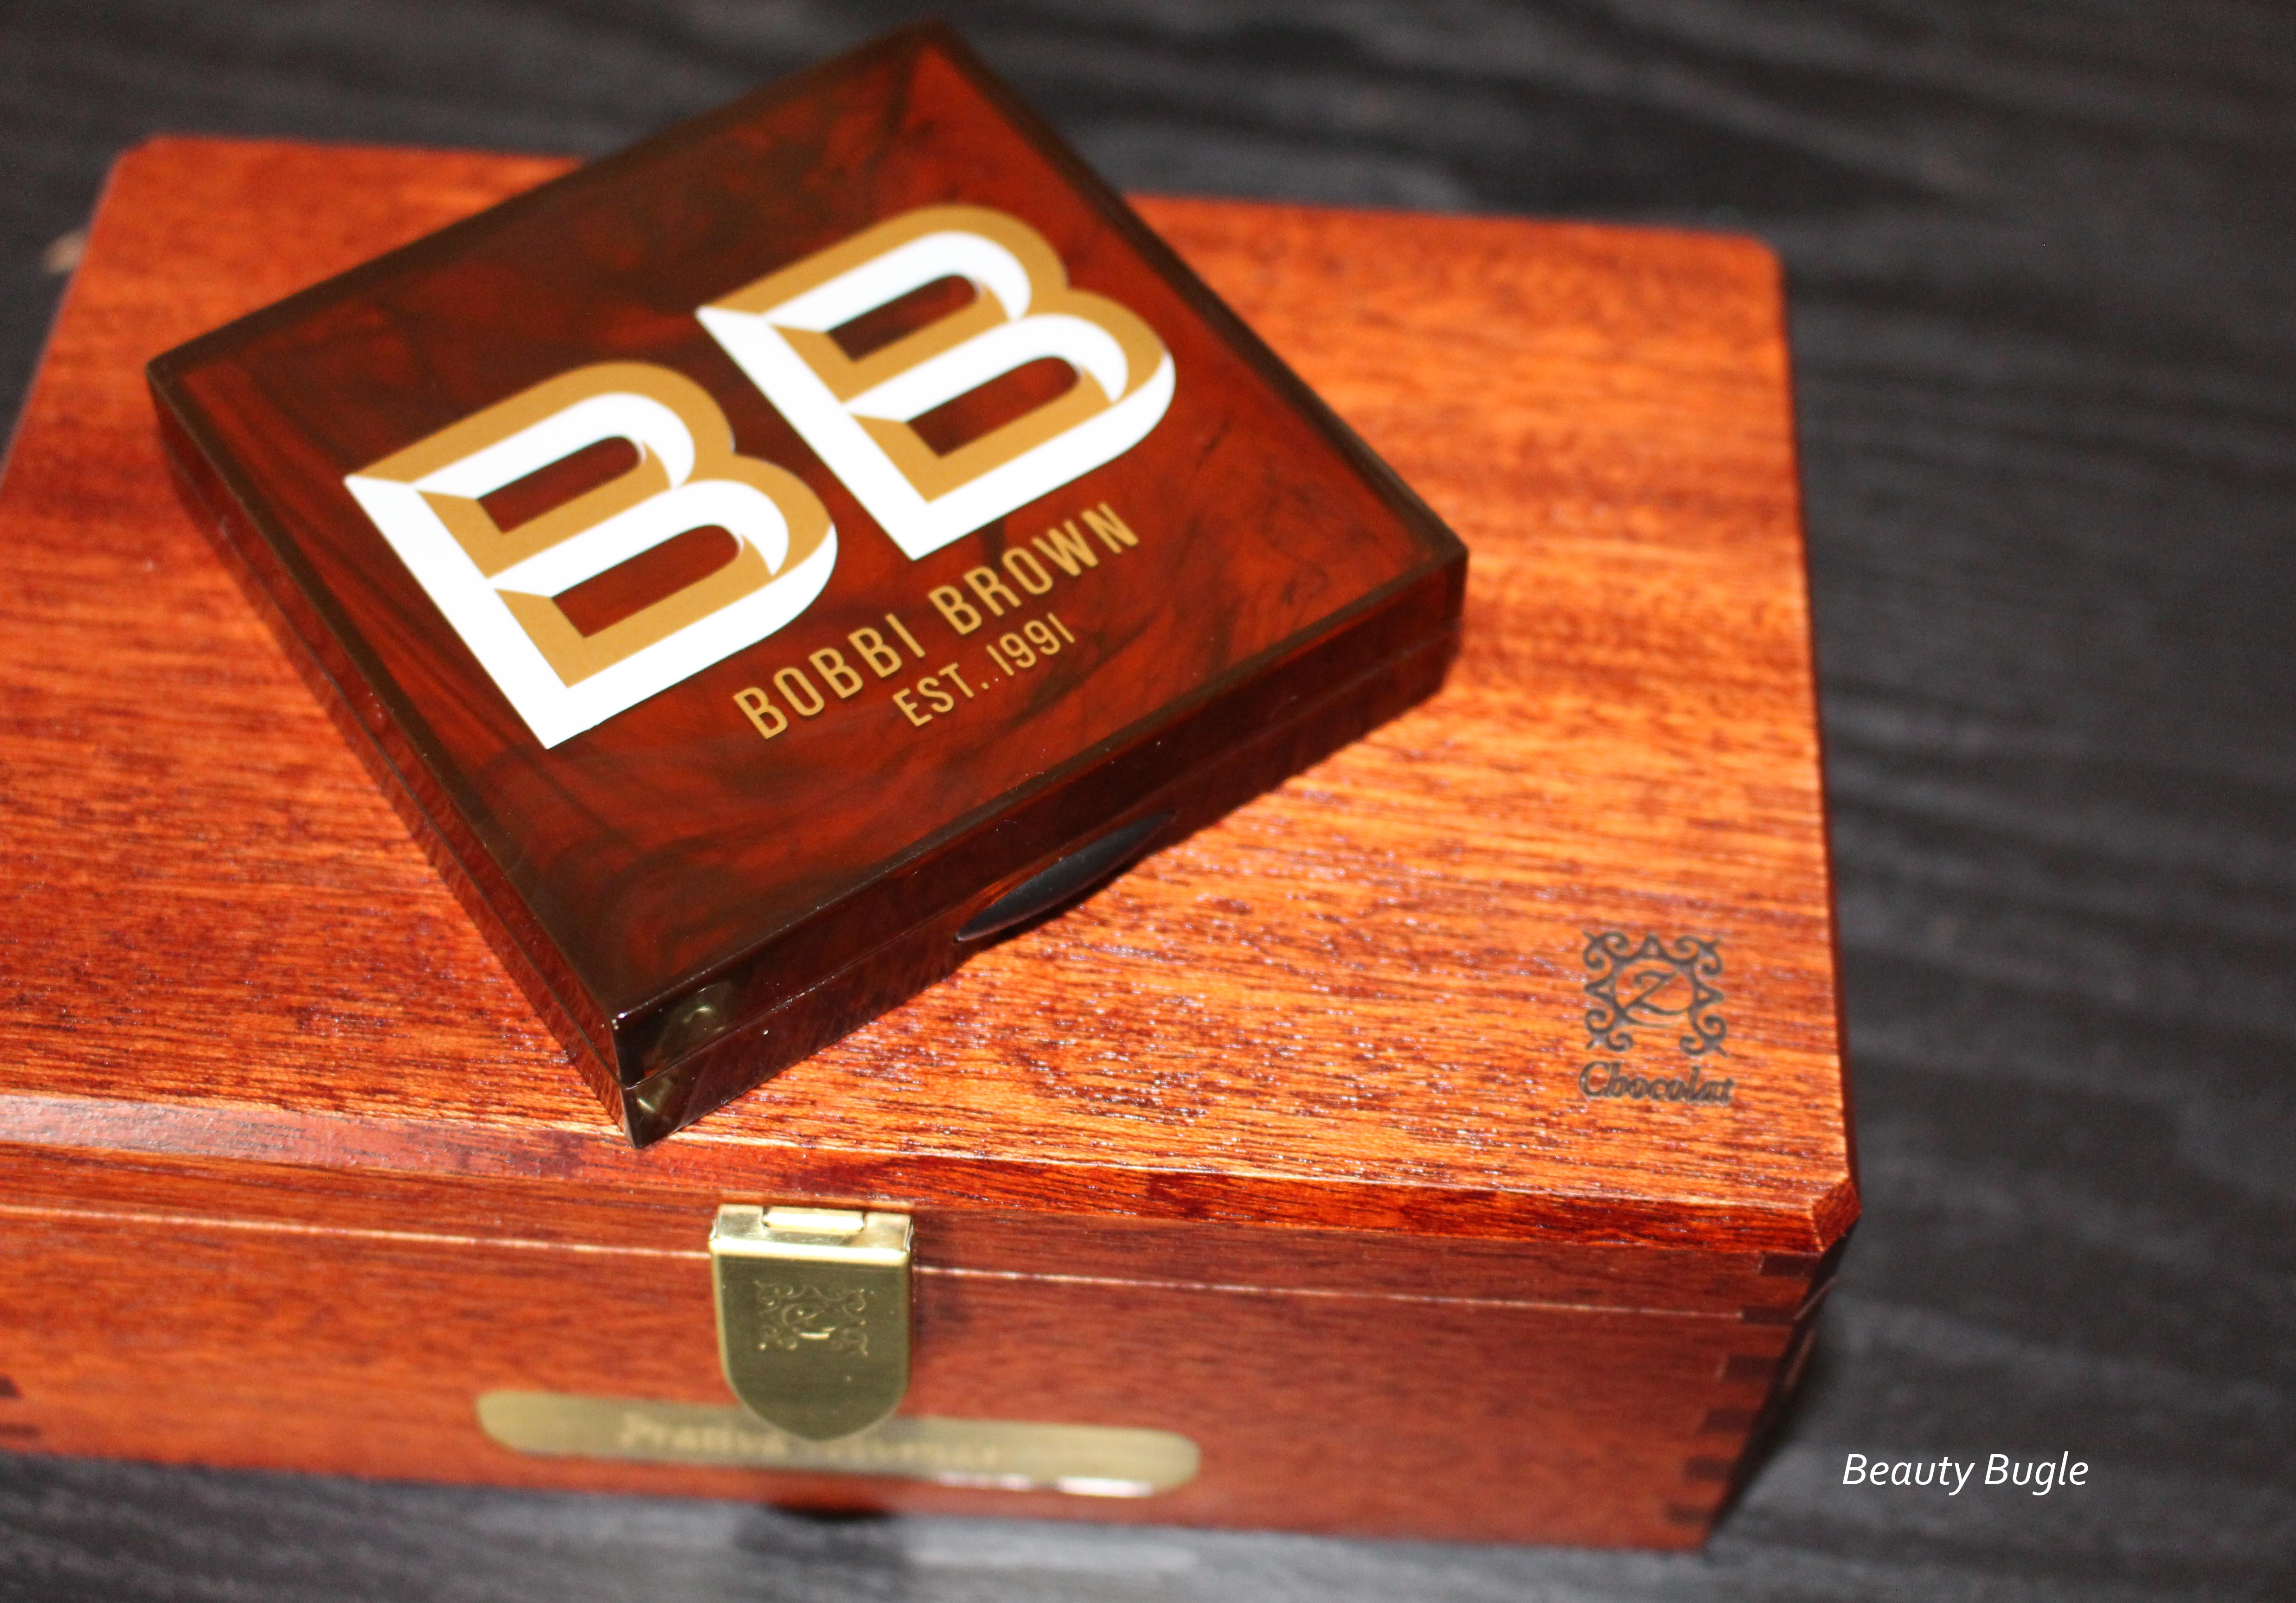 Bobbi Brown Highlighter Bronze Glow . . . Look at that packaging *drool*